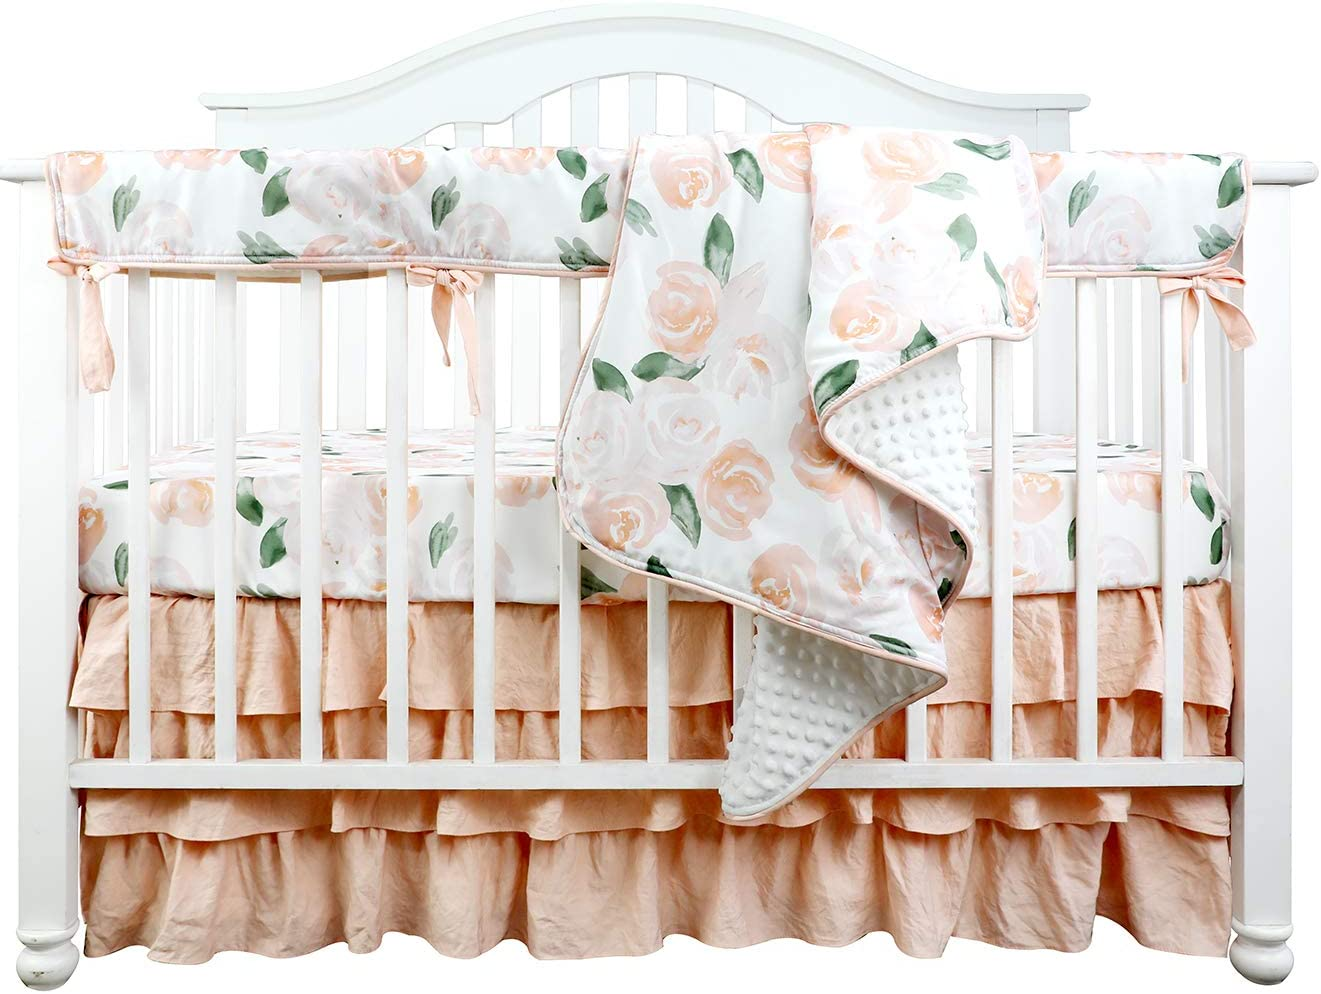 Boho Coral Floral Ruffle Skirt Baby Minky Blanket Peach Floral Nursery Crib Skirt Set Baby Girl Crib Bedding Feather Blanket Blush Watercolor Floral, 4pc Set